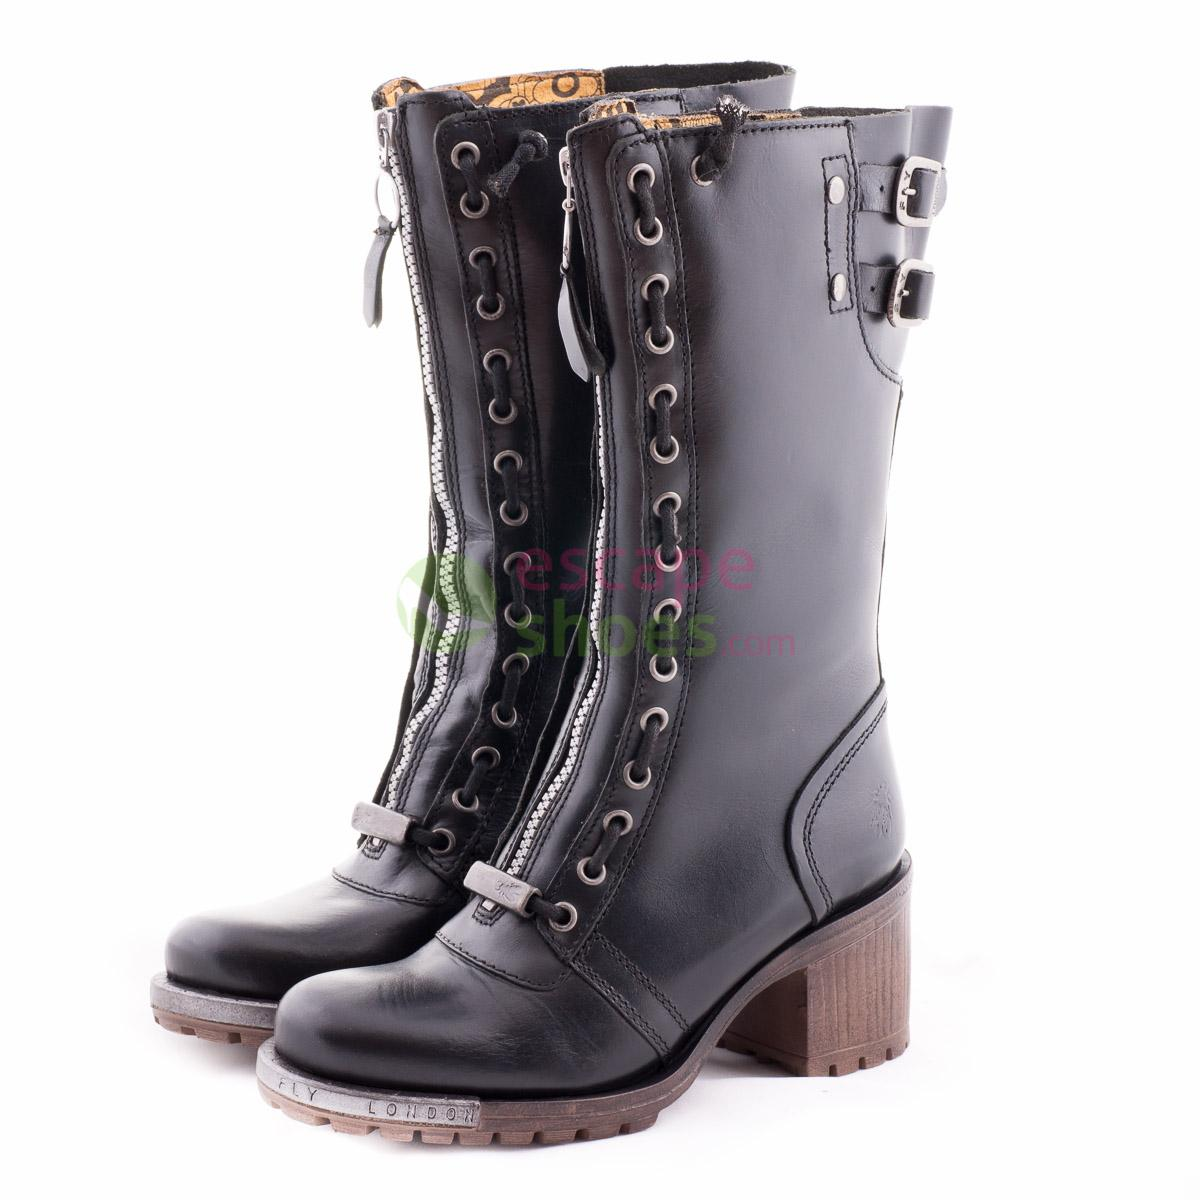 5d9d53d949 Buy your Boots FLY LONDON Logger Lada Black P143519000 here   Online ...